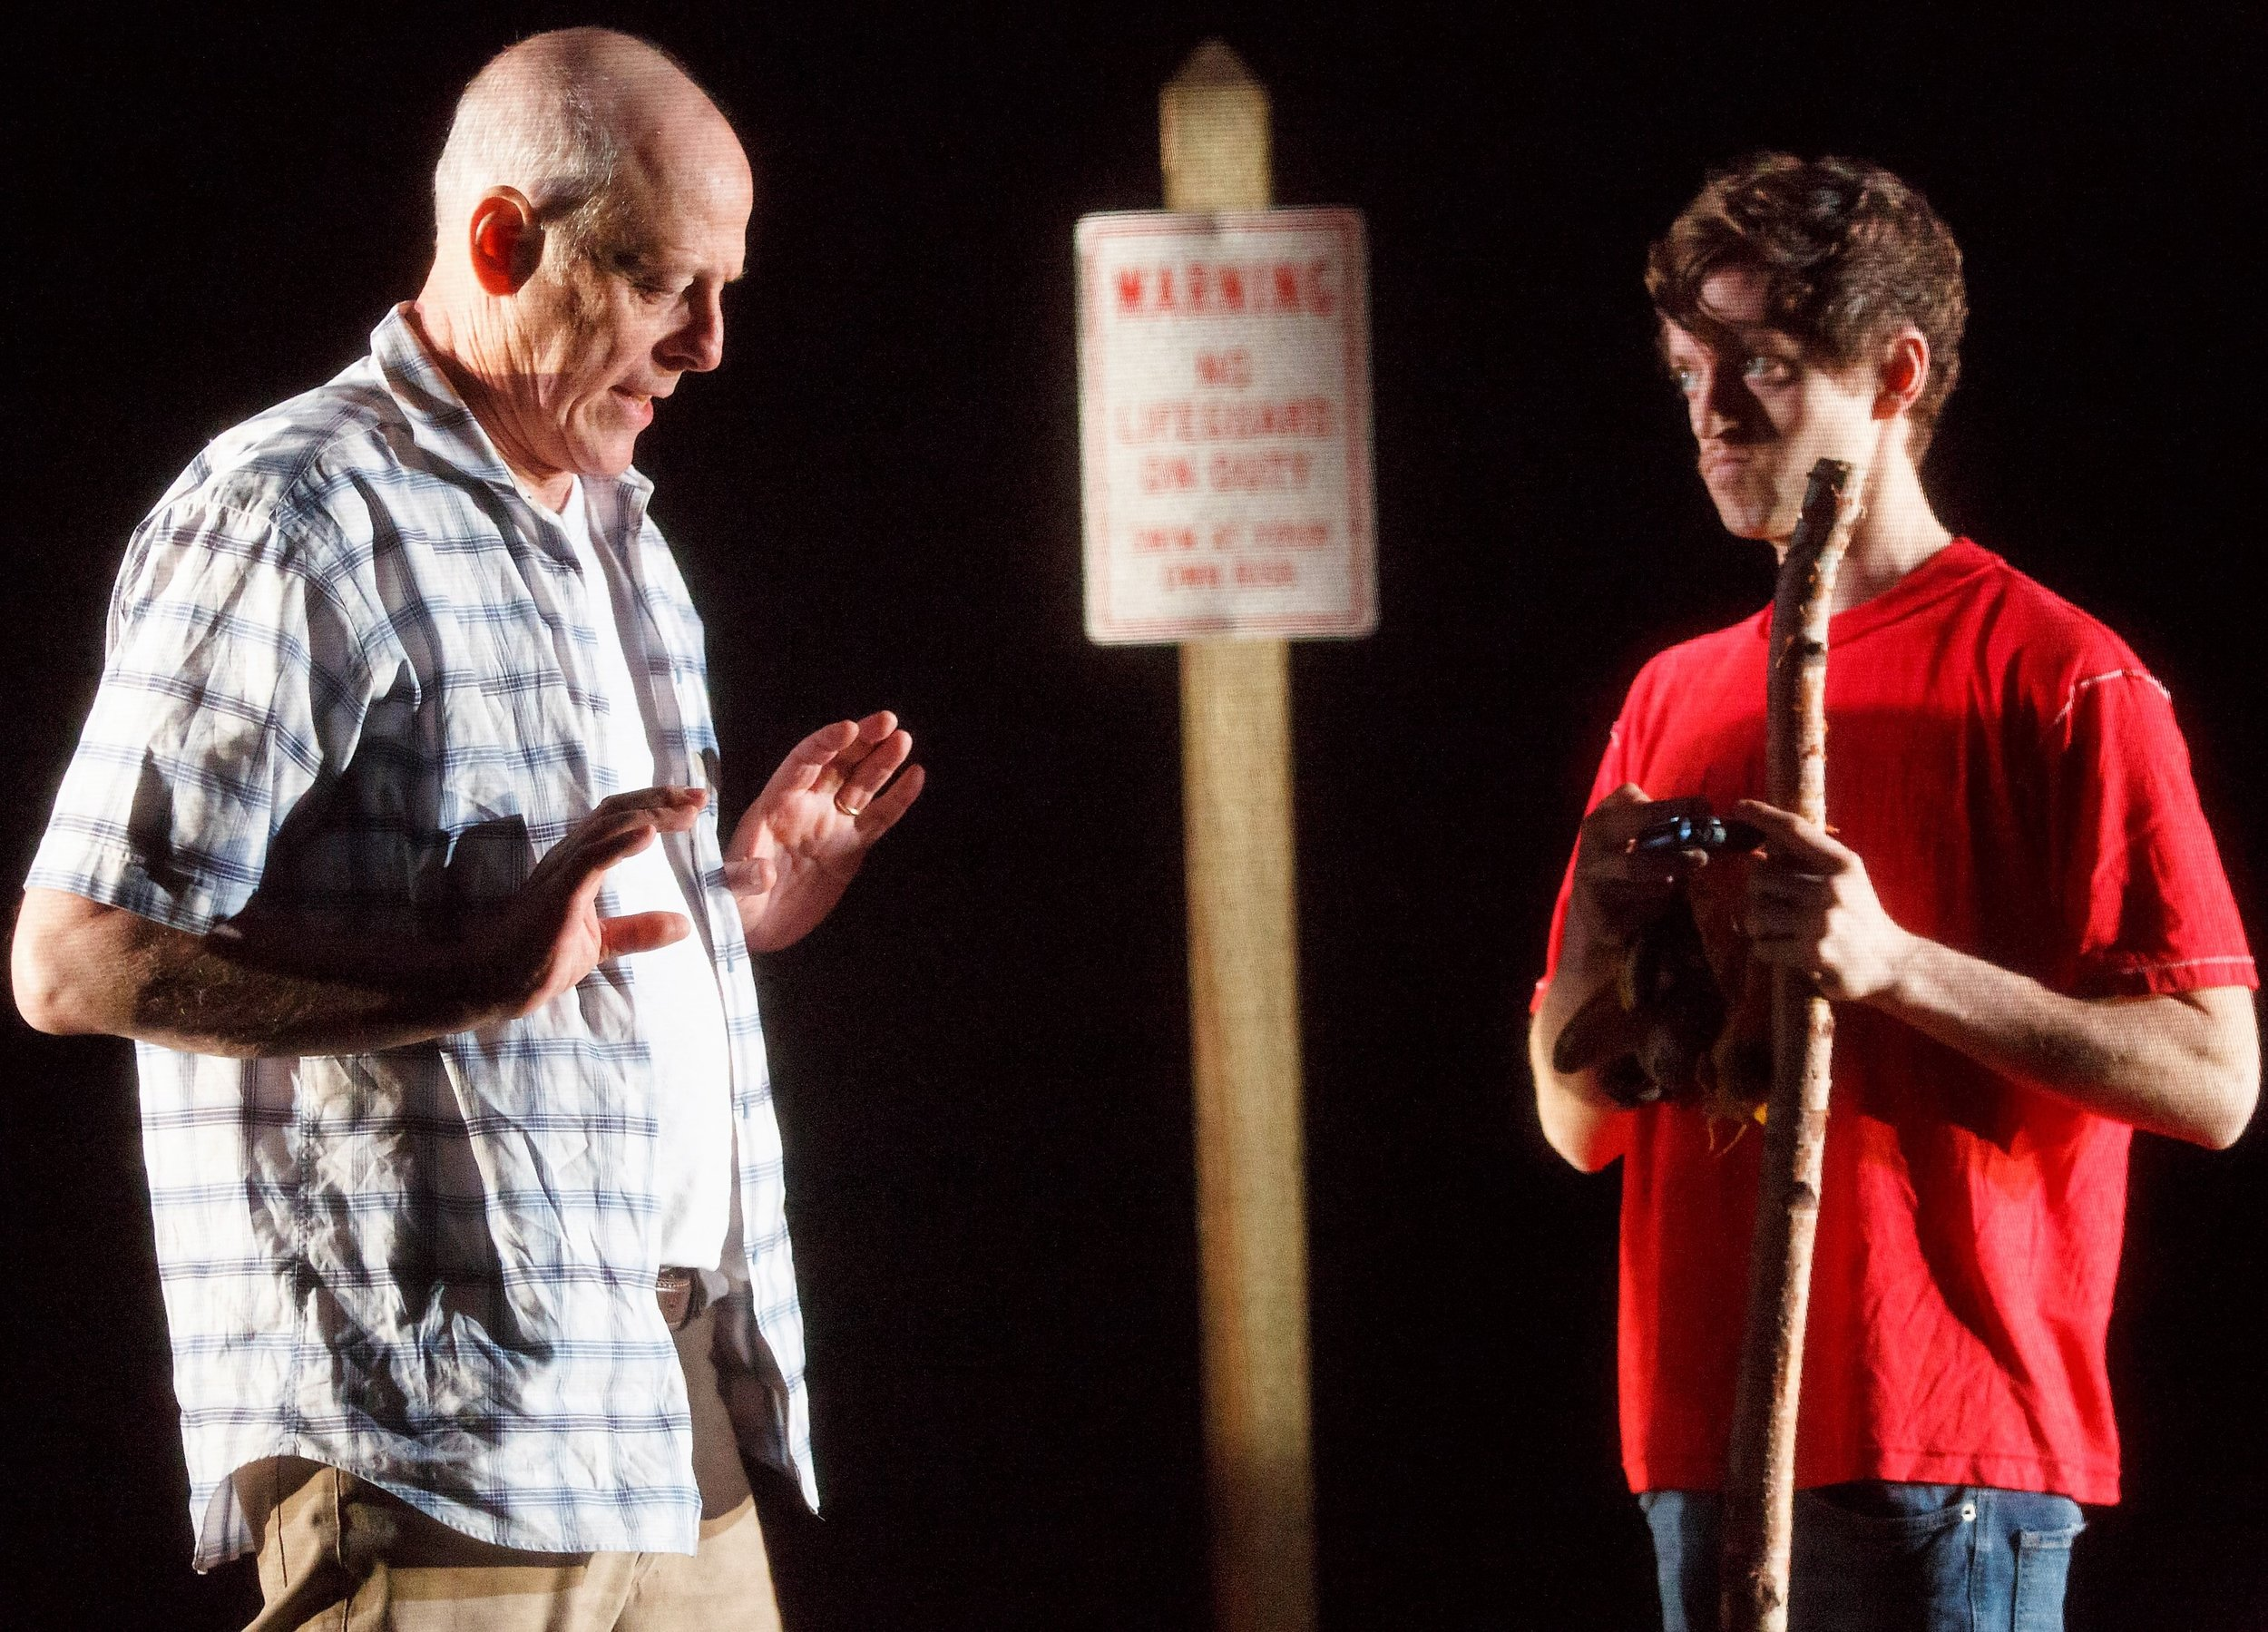 Blum as Pete encounters Ethan Dubin as Tate in the California desert.